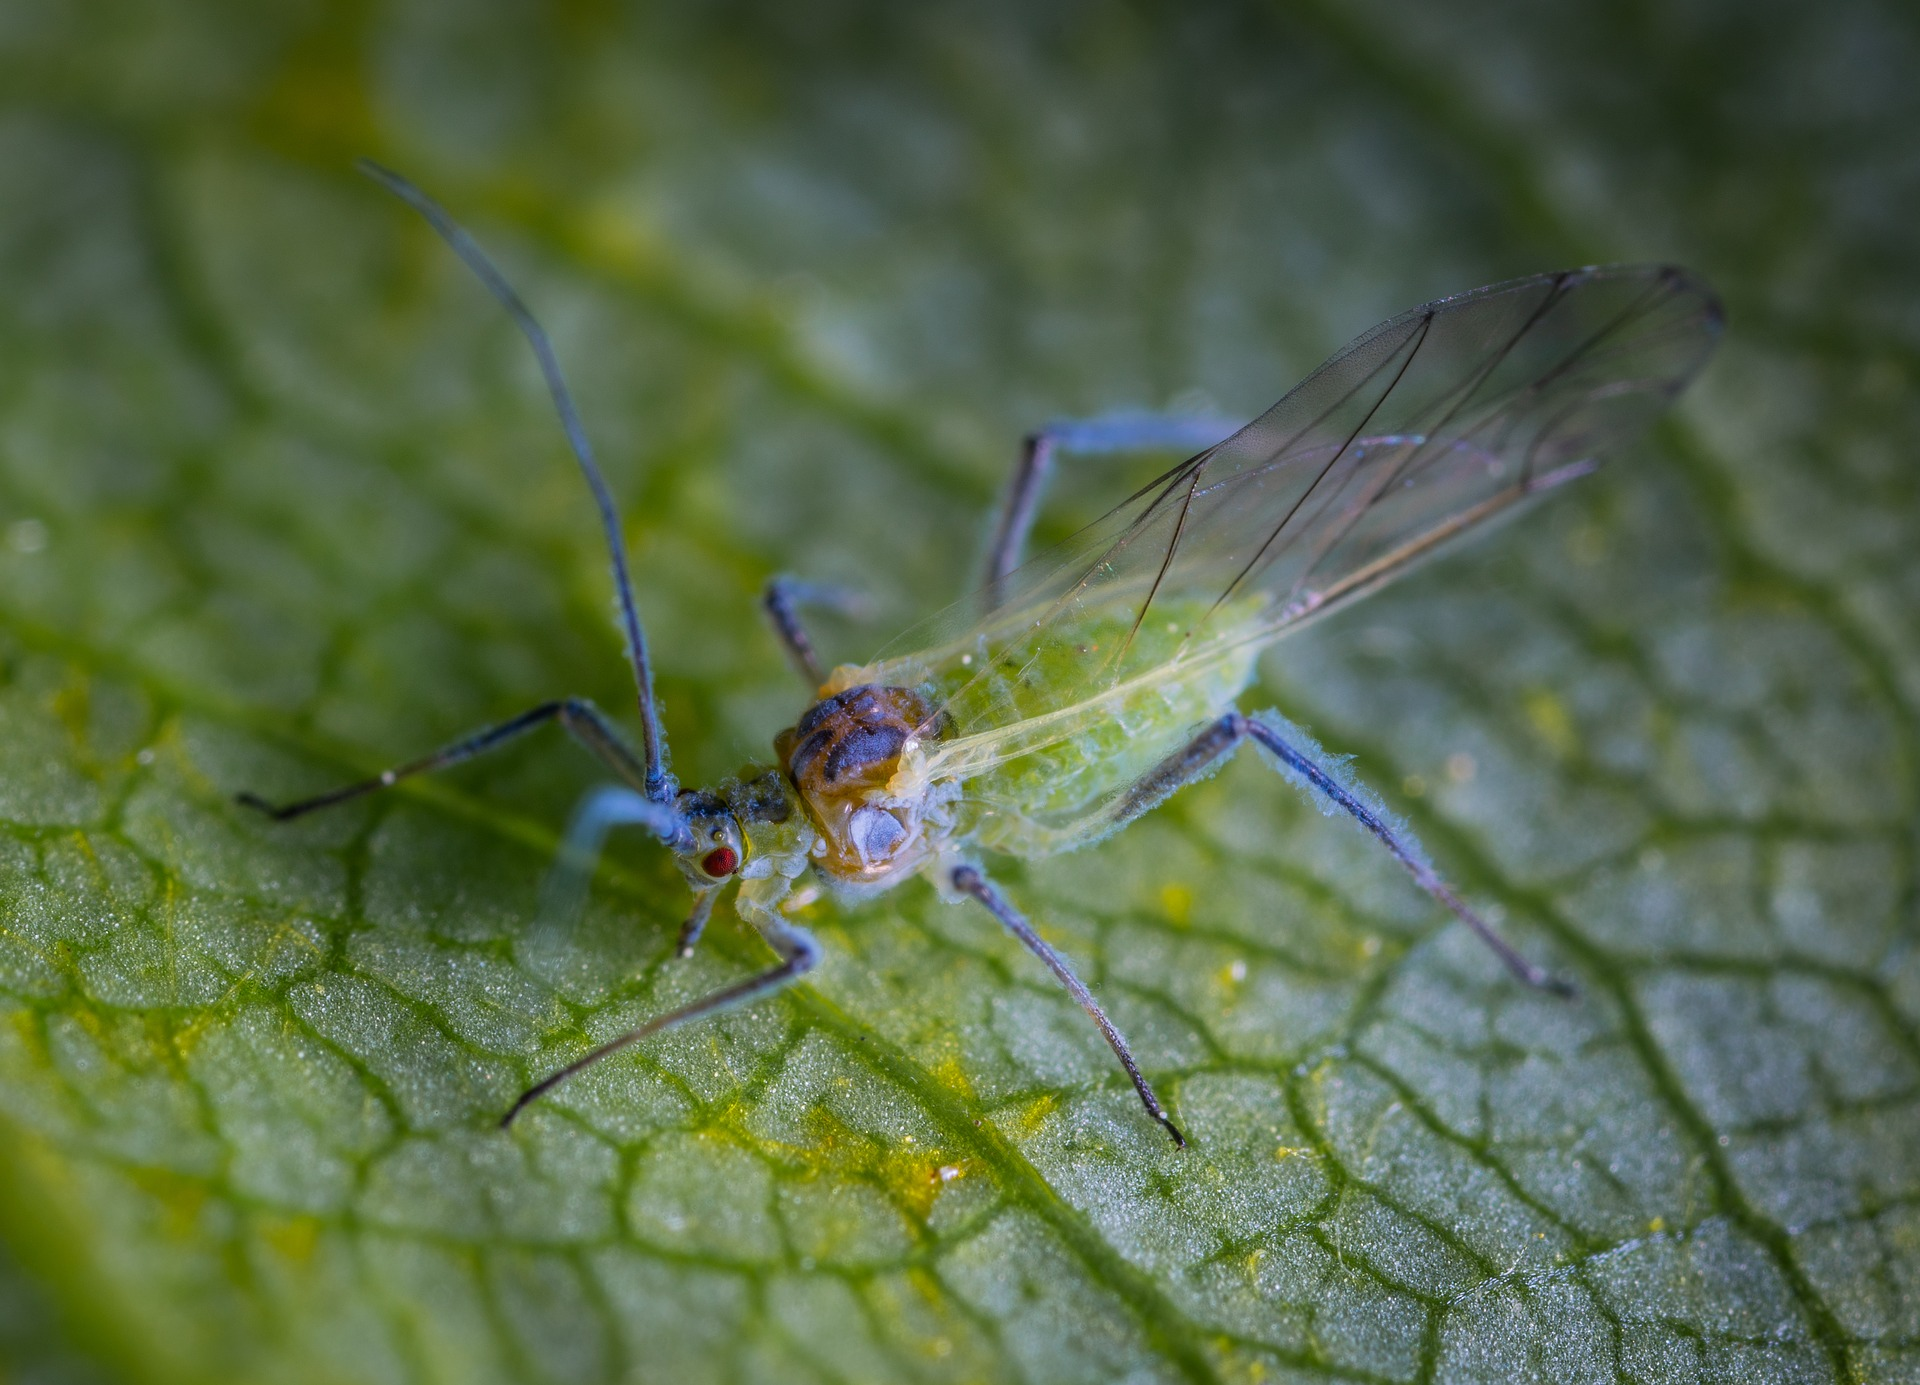 Why are there so many greenfly around?